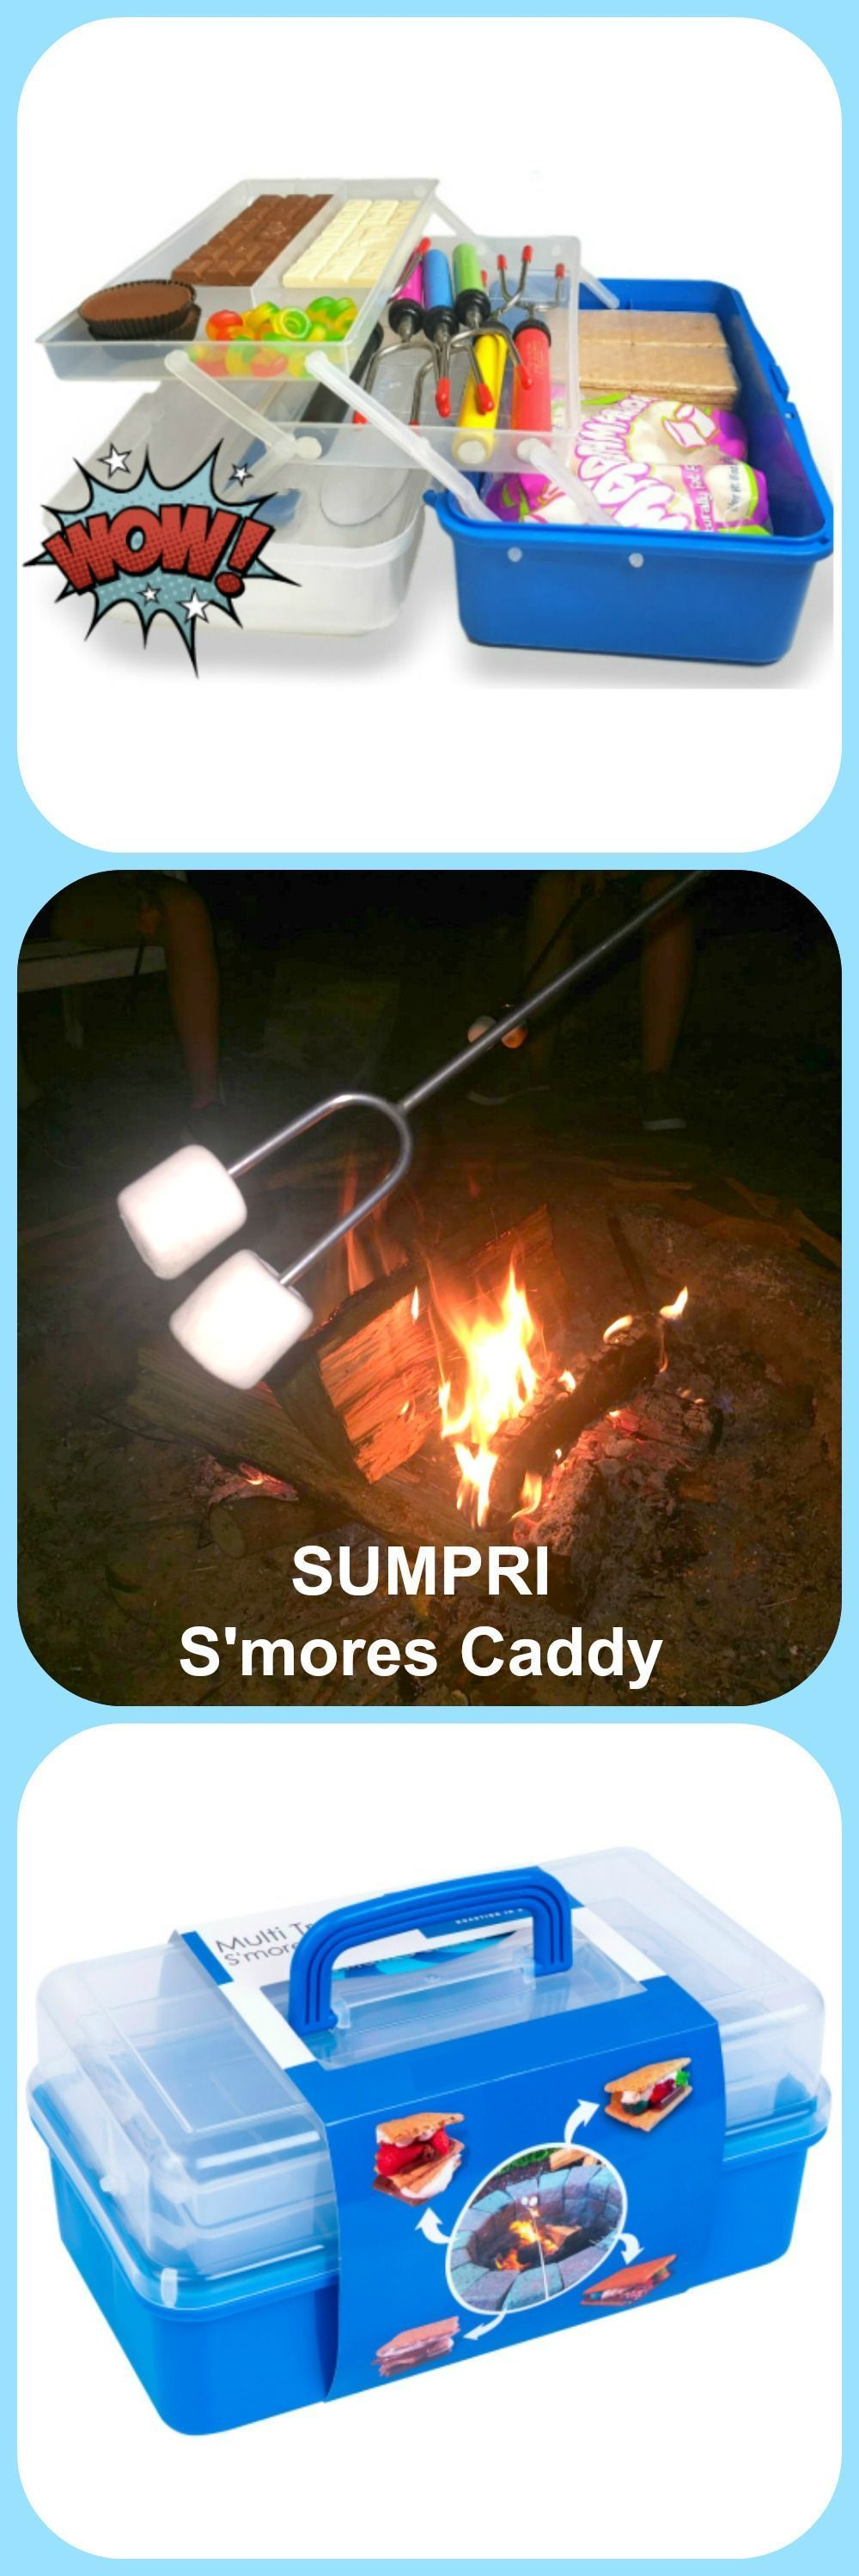 SUMPRI S'mores Caddy, Keep Your Marshmallows & Roasting Sticks All In The Same Place, now on Amazon.com or Sumpri.com . . . . . . . .  #sumpri #marshmallow #roasting #sticks #s'mores #smores #s'morescaddy #smoressticksforfirepit #firepit #smoresskewers #firepitaccessories #campfireskewers #s'moressticks #hotdogforks #marshmallowroastingtelescoping #campfiresticks #telescopingskewers #collapsibleroastingsticks #smoressticks SUMPRI S'mores Caddy, Keep Your Marshmallows & Roasting Sticks All In The #marshmallowsticks